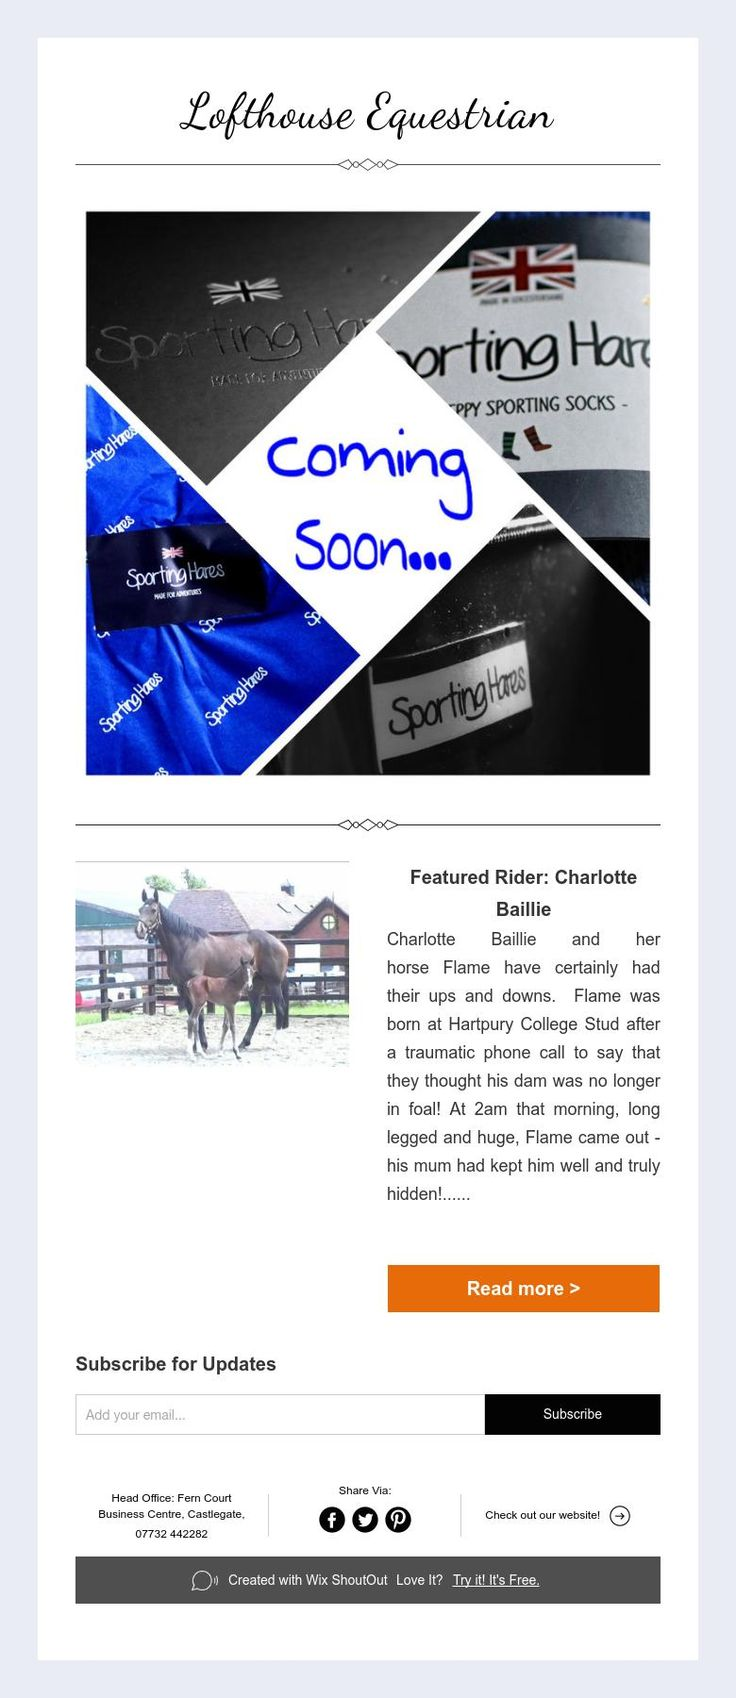 Coming soon... Sporting Hares... Featured Rider Charlotte Baillie... #LofthouseEquestrian